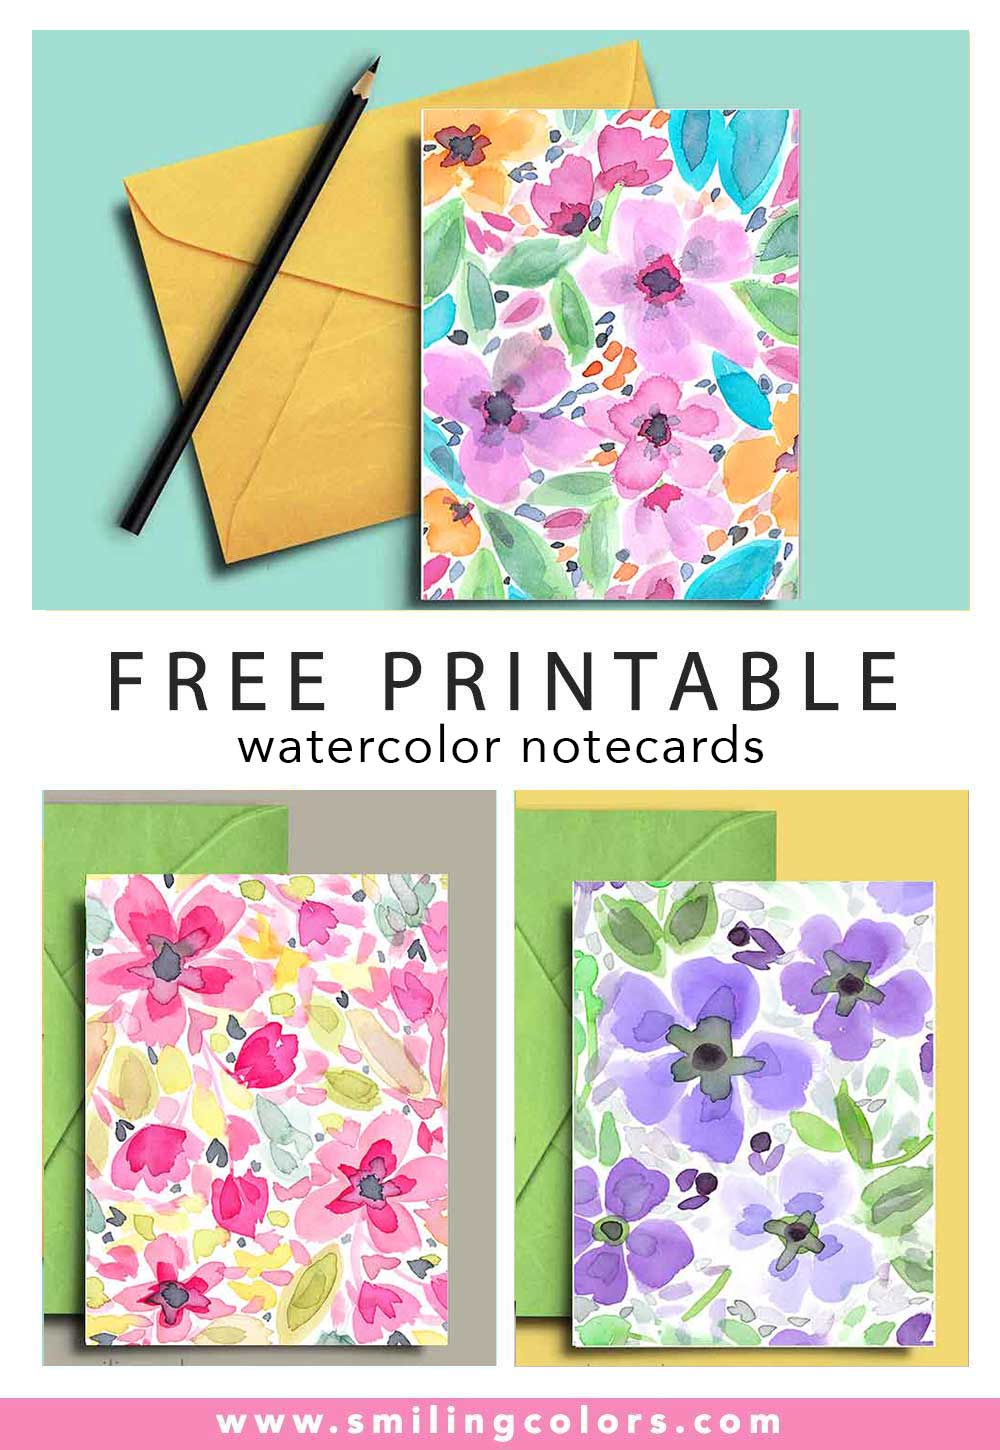 graphic regarding Printable Note Cards identify No cost Printable watercolor notecards that yourself can down load